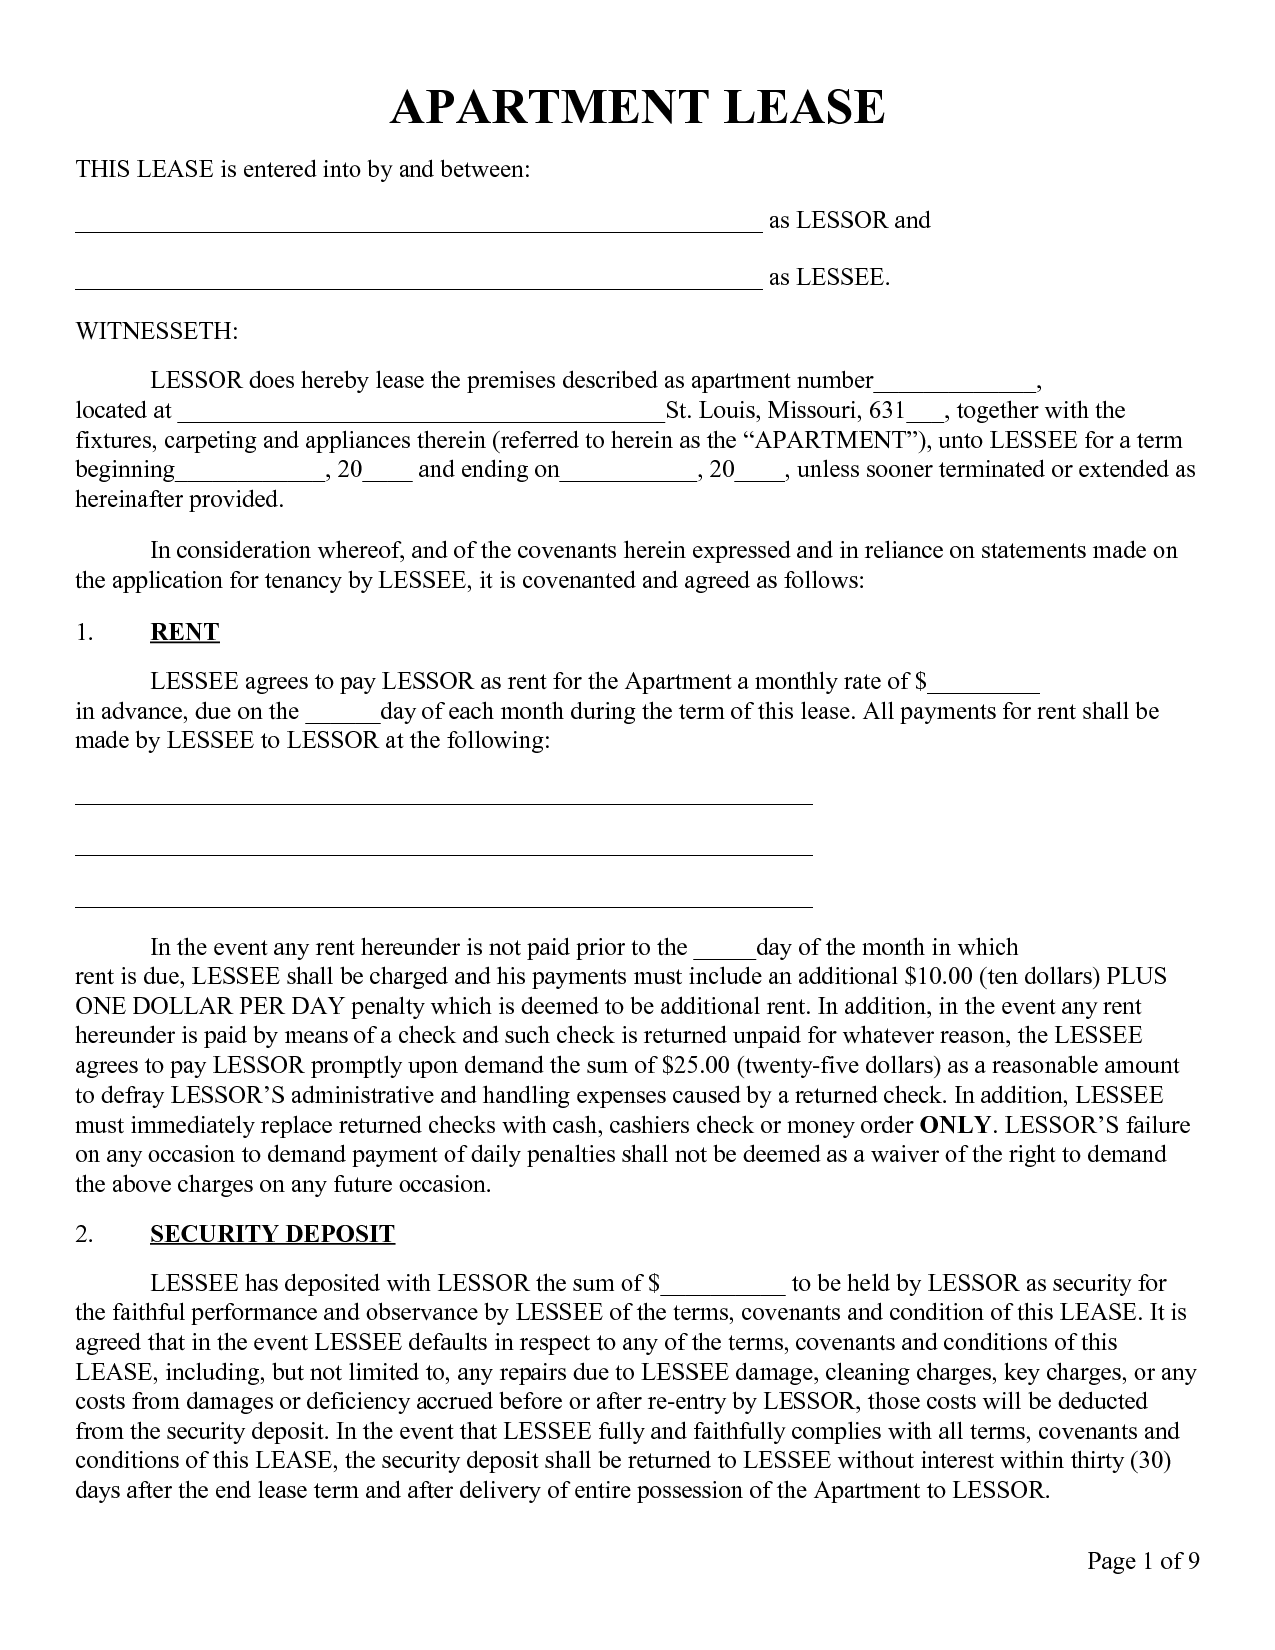 Apartment Lease Termination Letter Apartment Sublease Agreement